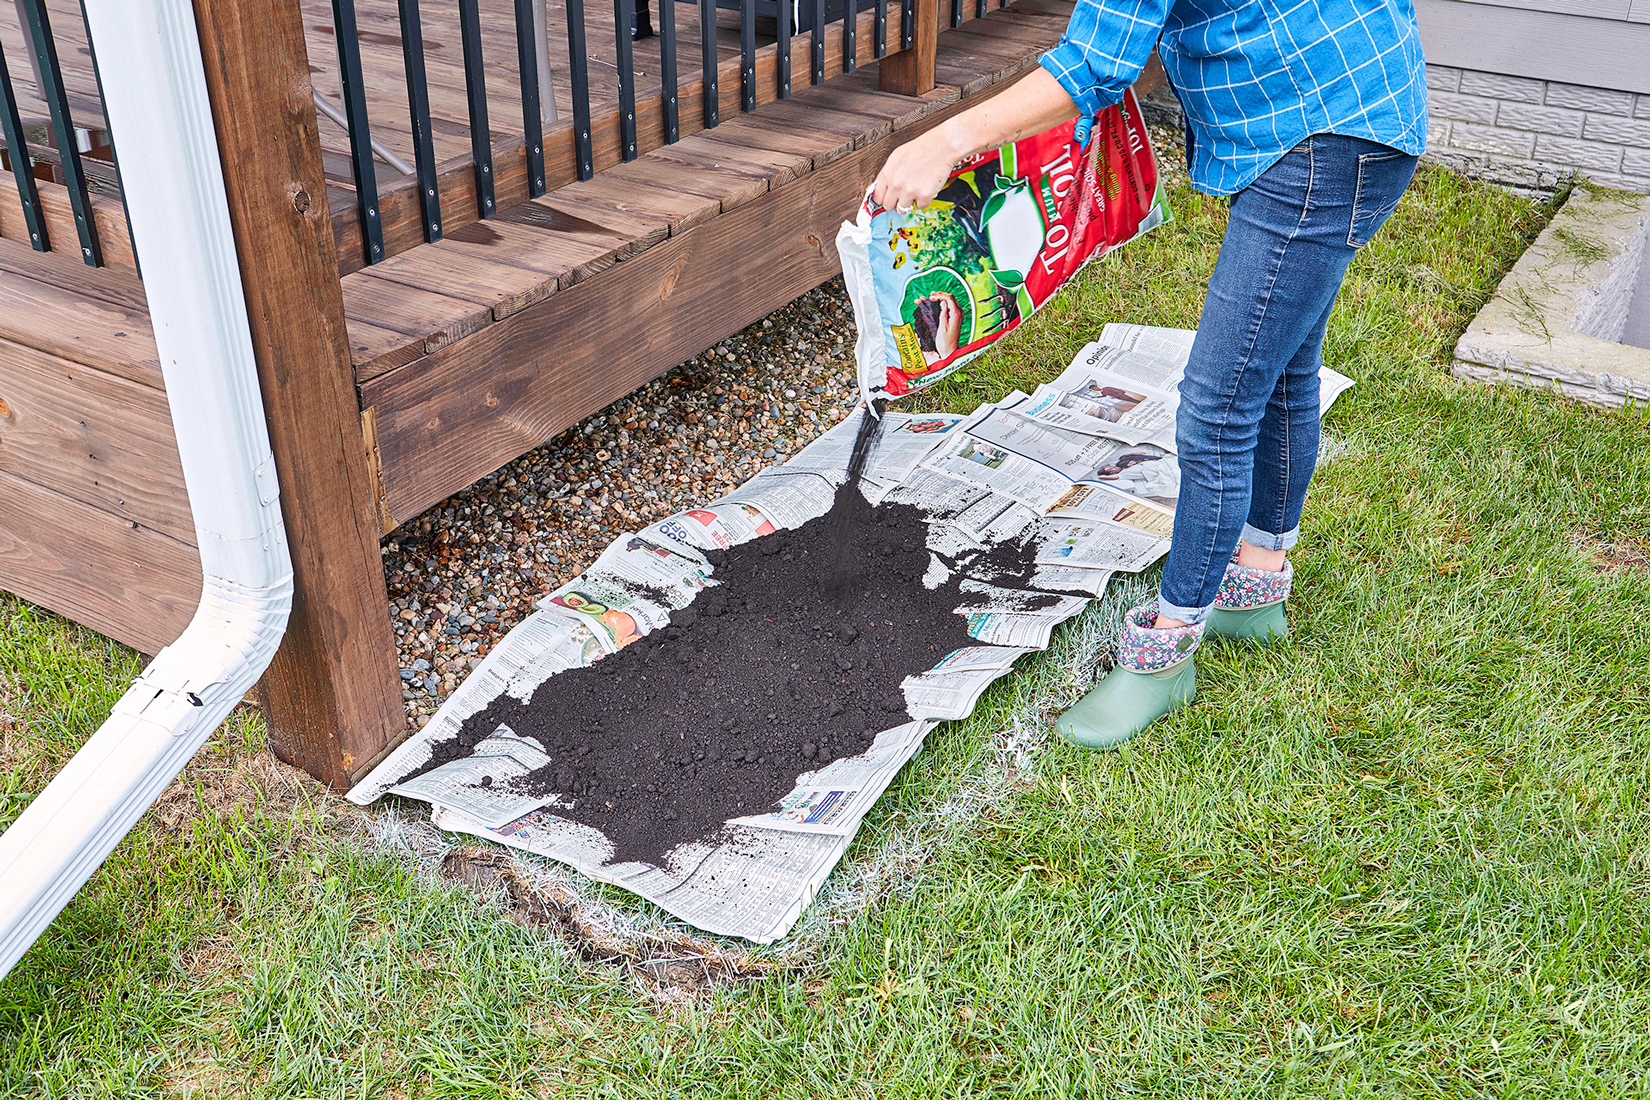 pour layer of topsoil on newspaper